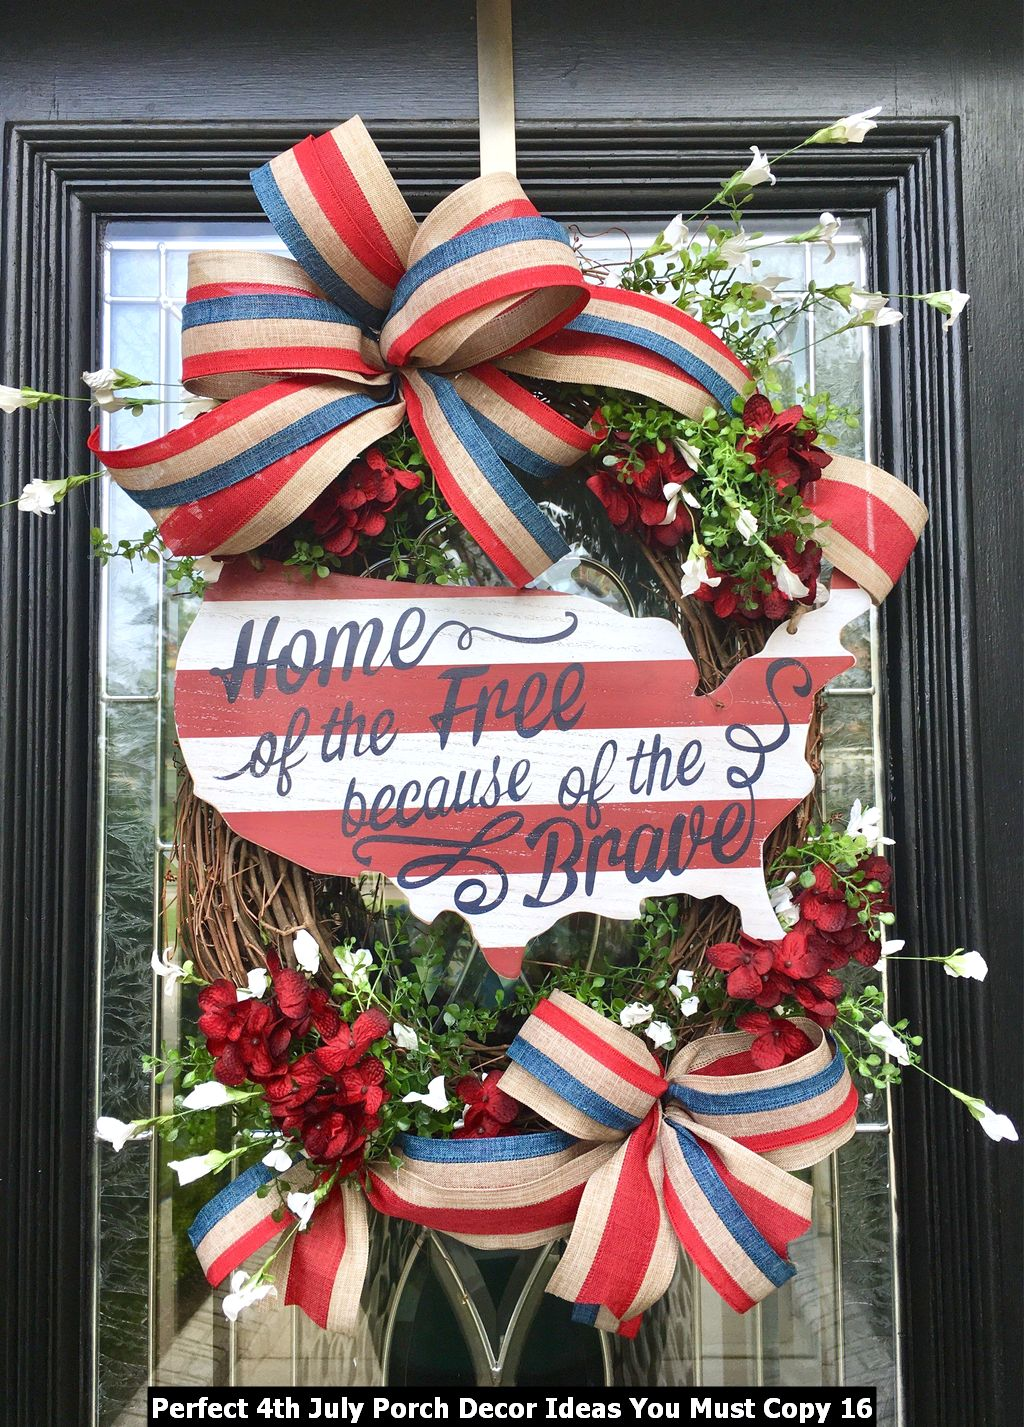 Perfect 4th July Porch Decor Ideas You Must Copy 16